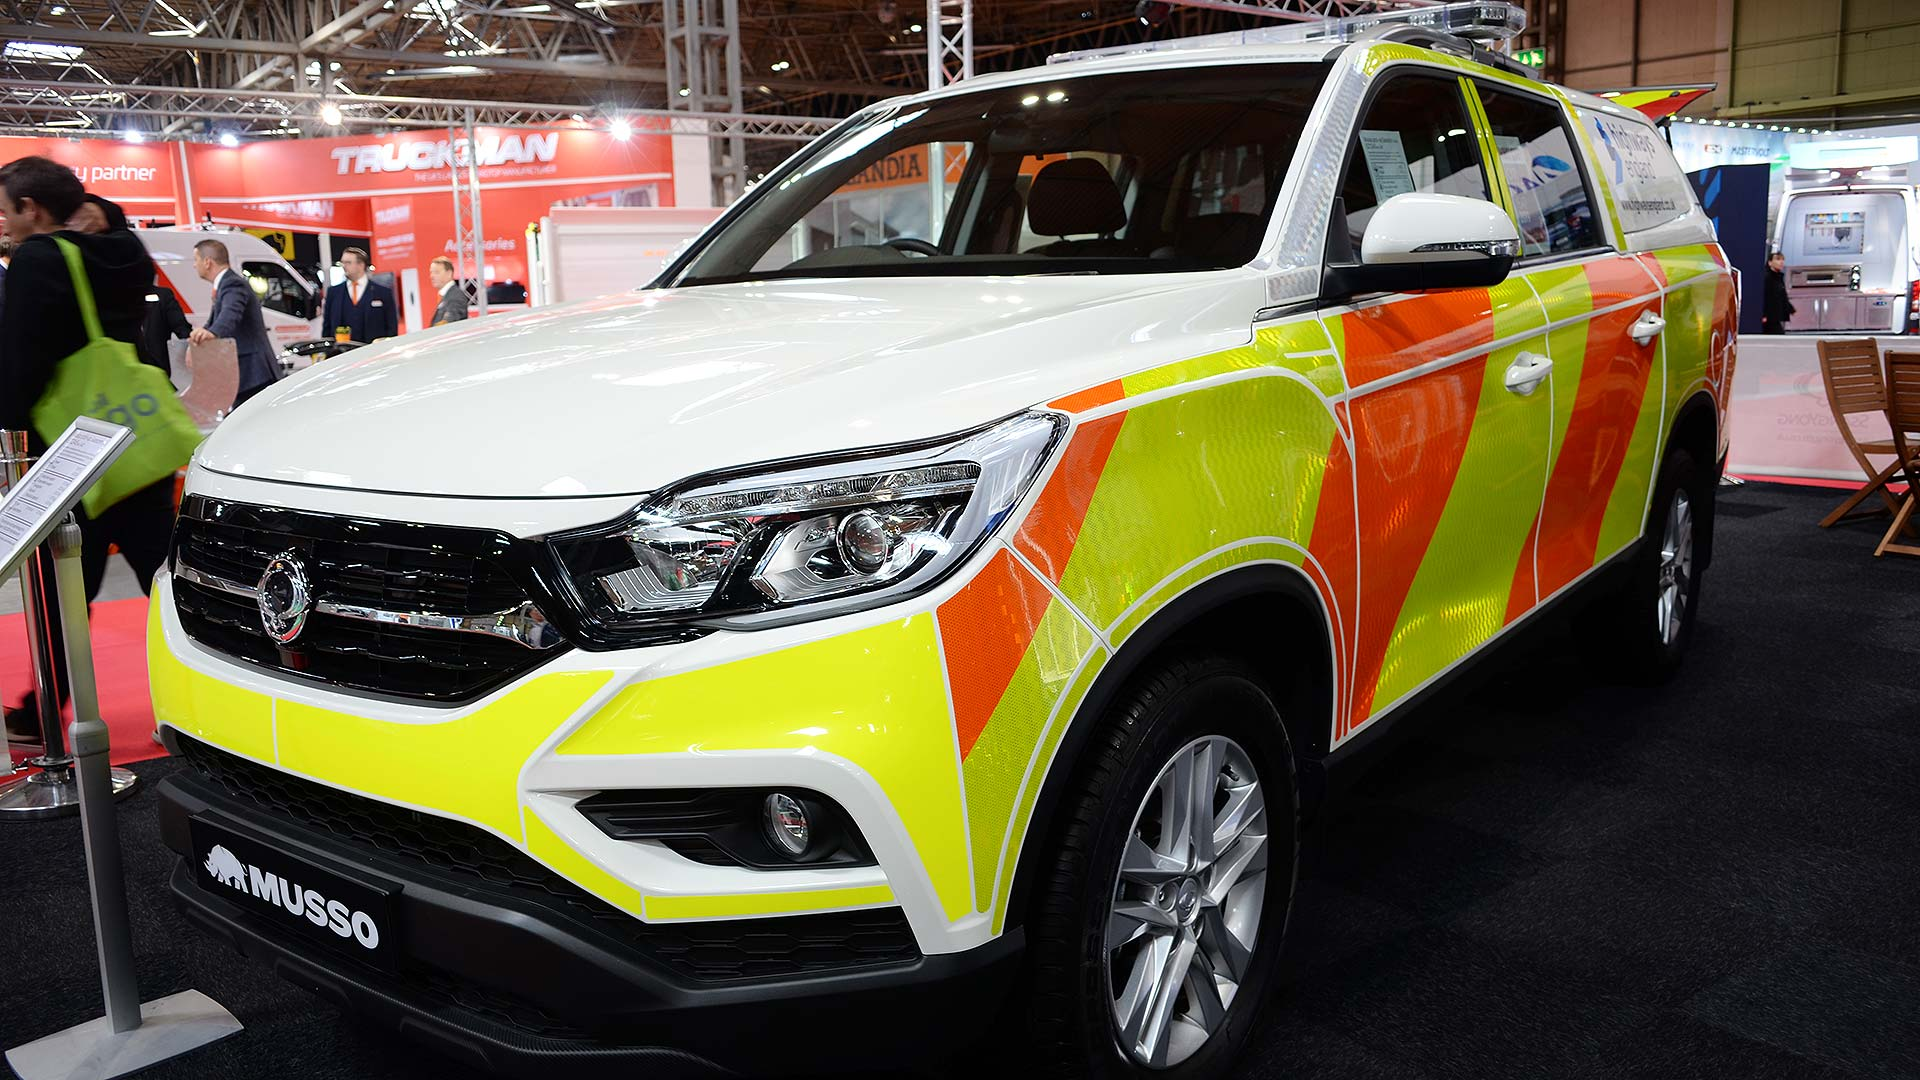 SsangYong Musso Highways England